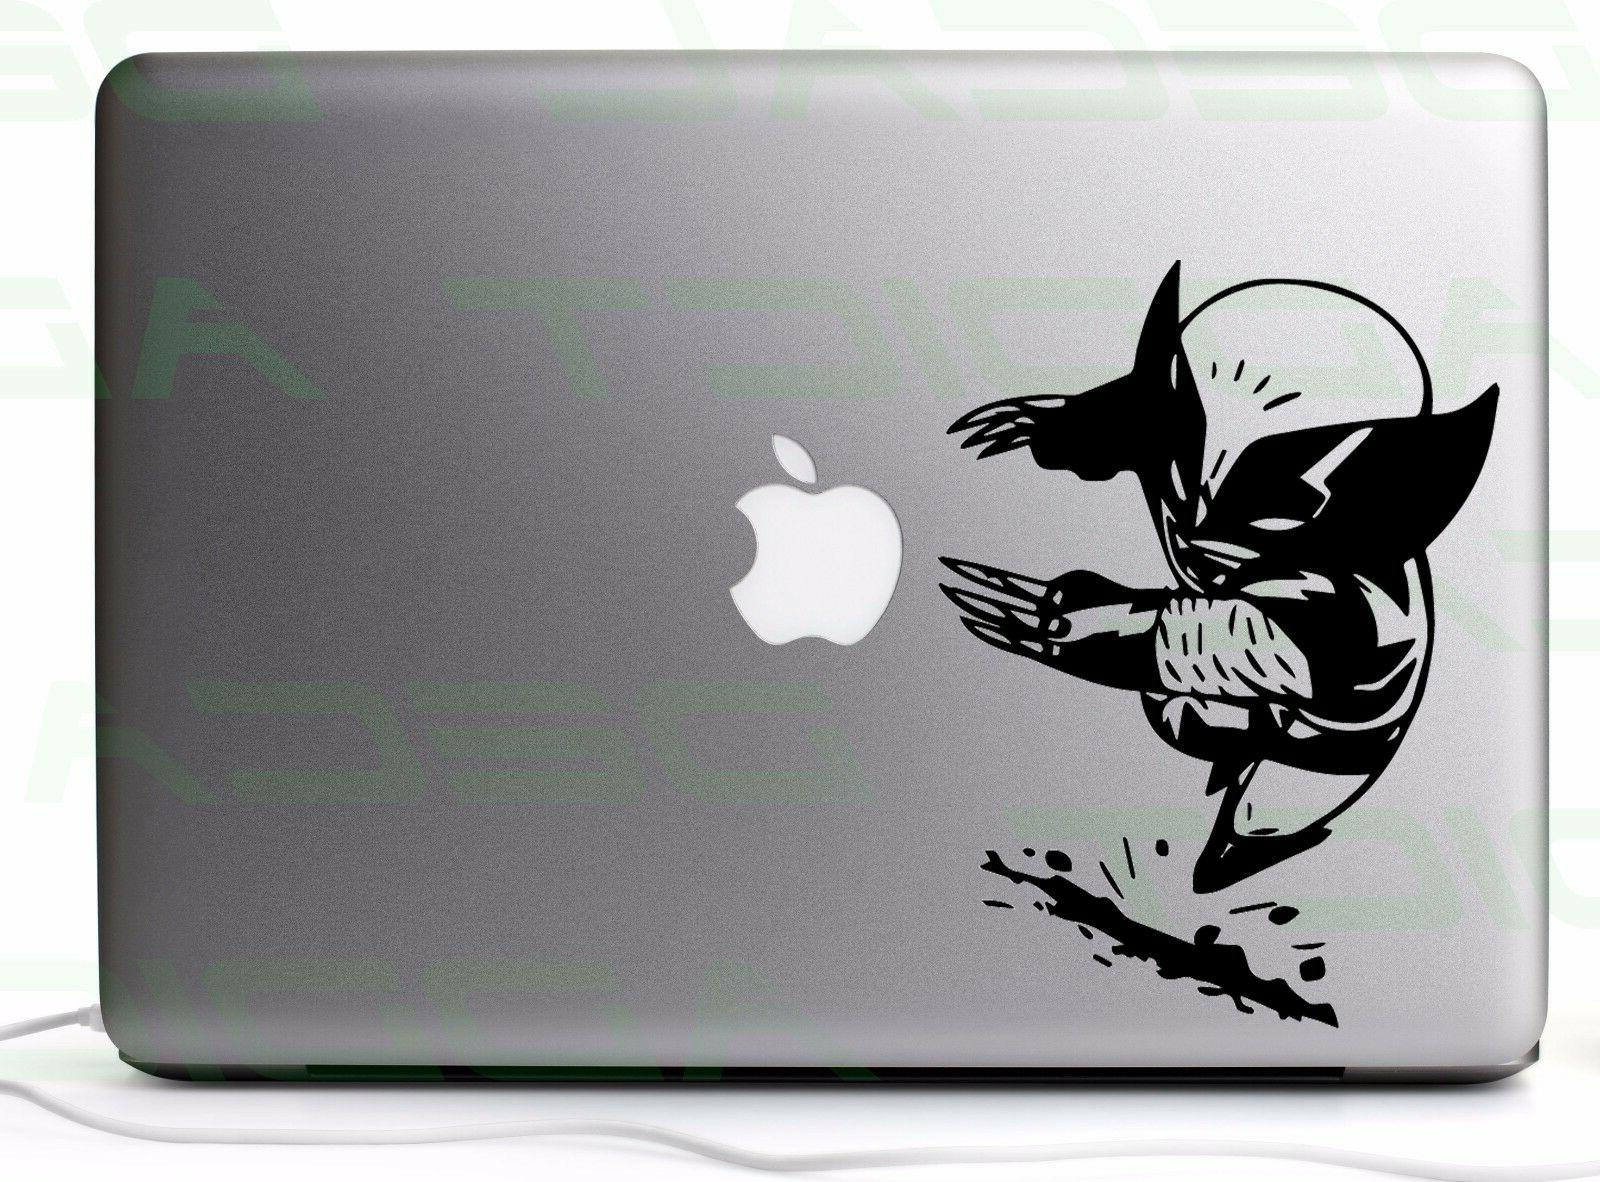 X-Men Wolverine Vinyl Decal Sticker for Car/Laptop/Console